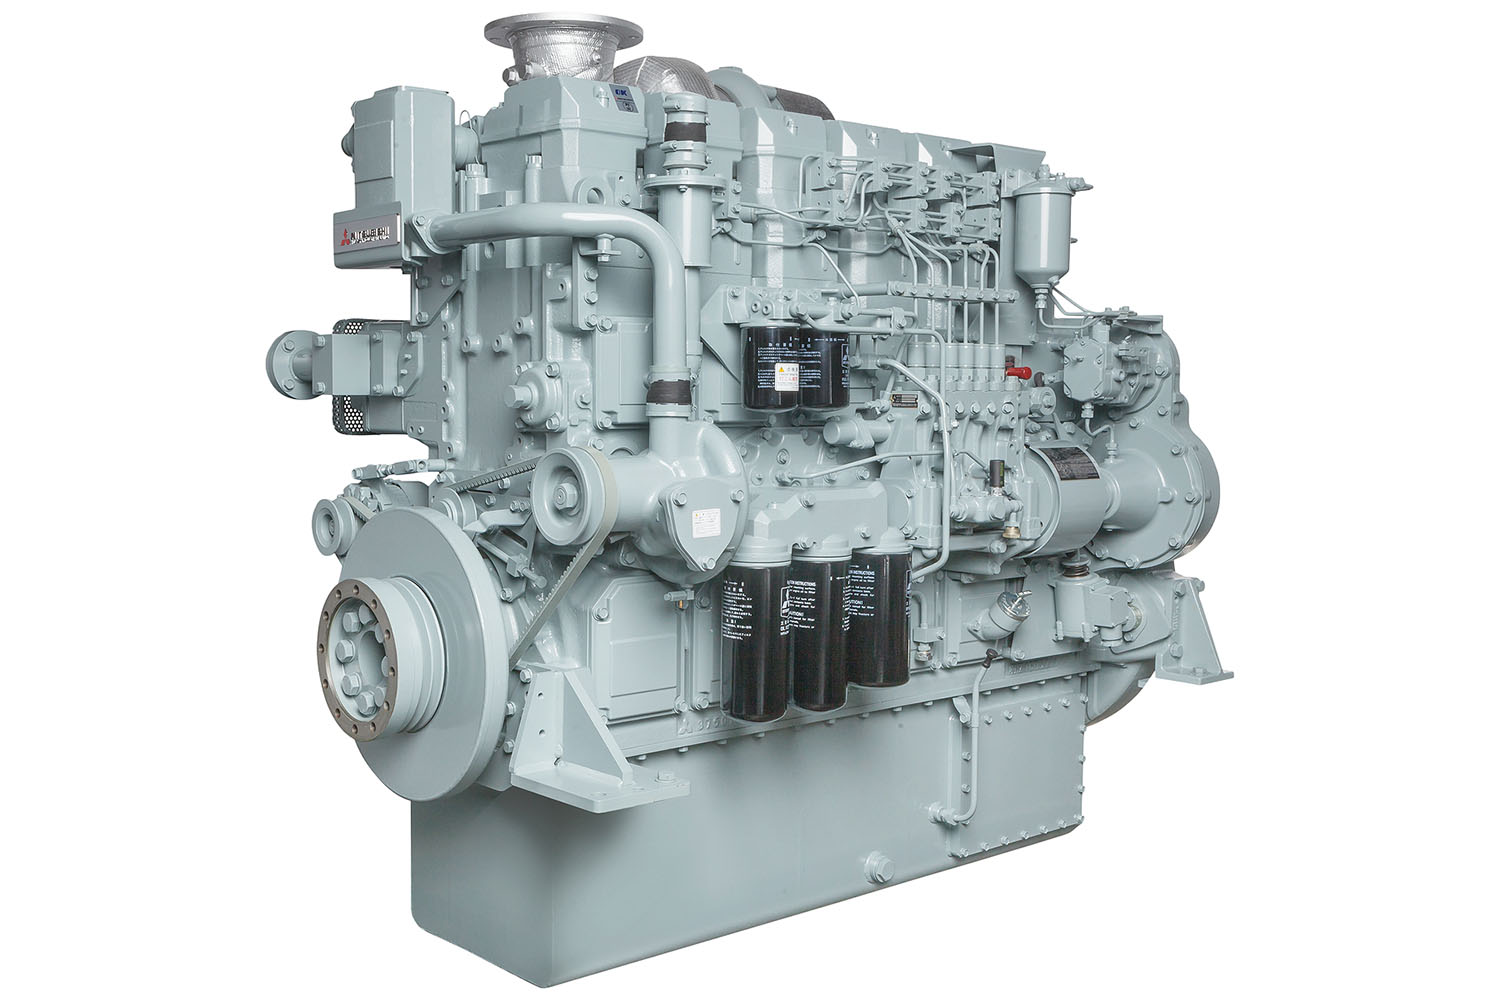 The JPR-ME5000 impeller cooling pump is compact and lightweight at 8.58 inches and 34 pounds. (Photo courtesy of JMP Marine)